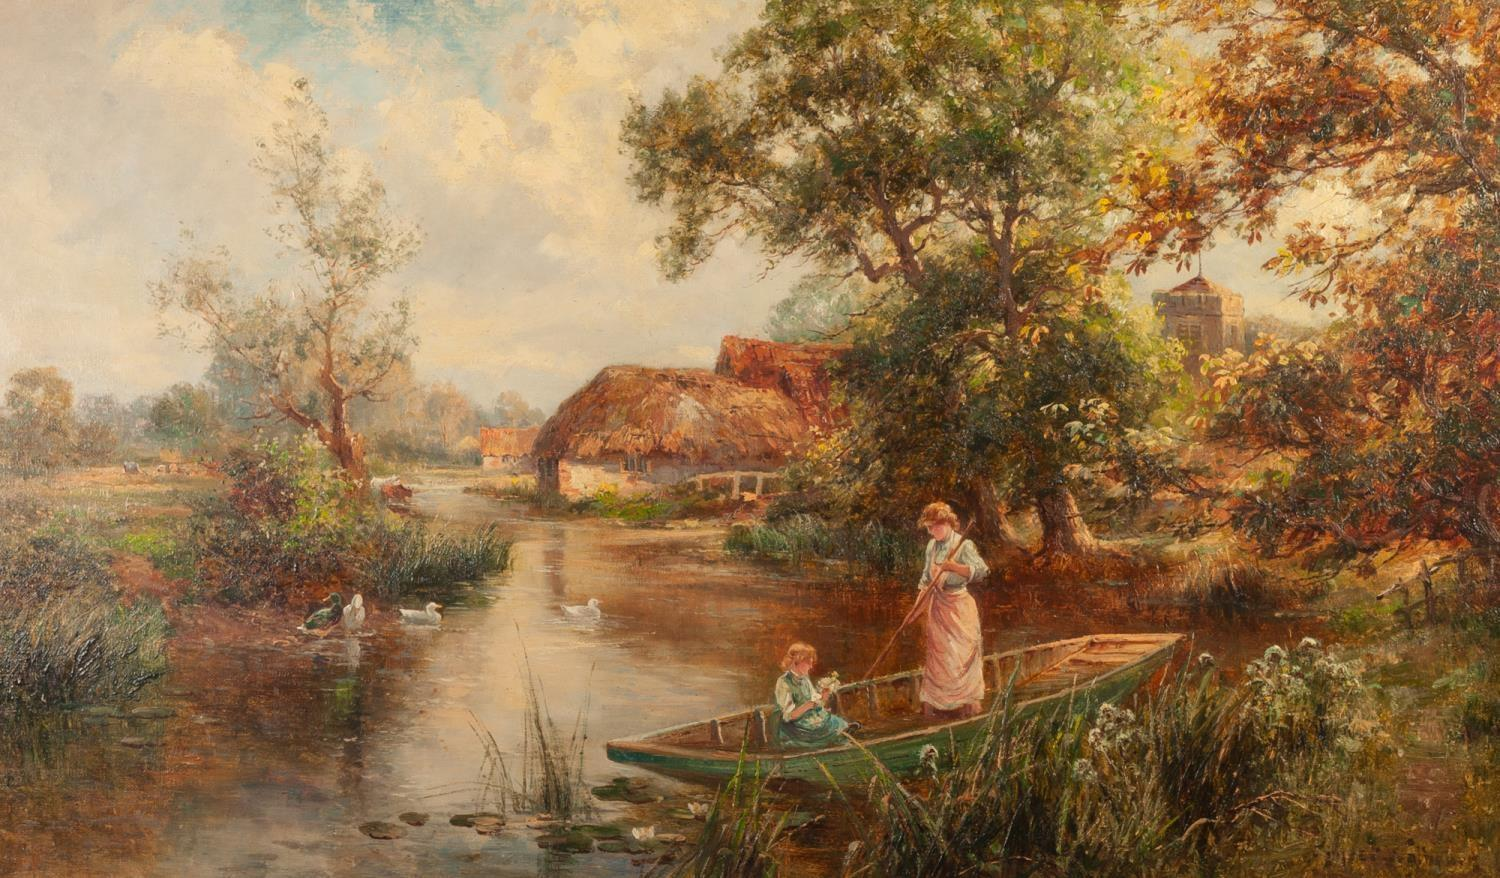 Lot 232 - ERNEST CHARLES WALBOURN (1872 - 1927) OIL PAINTING ON CANVAS River landscape with a mother and child